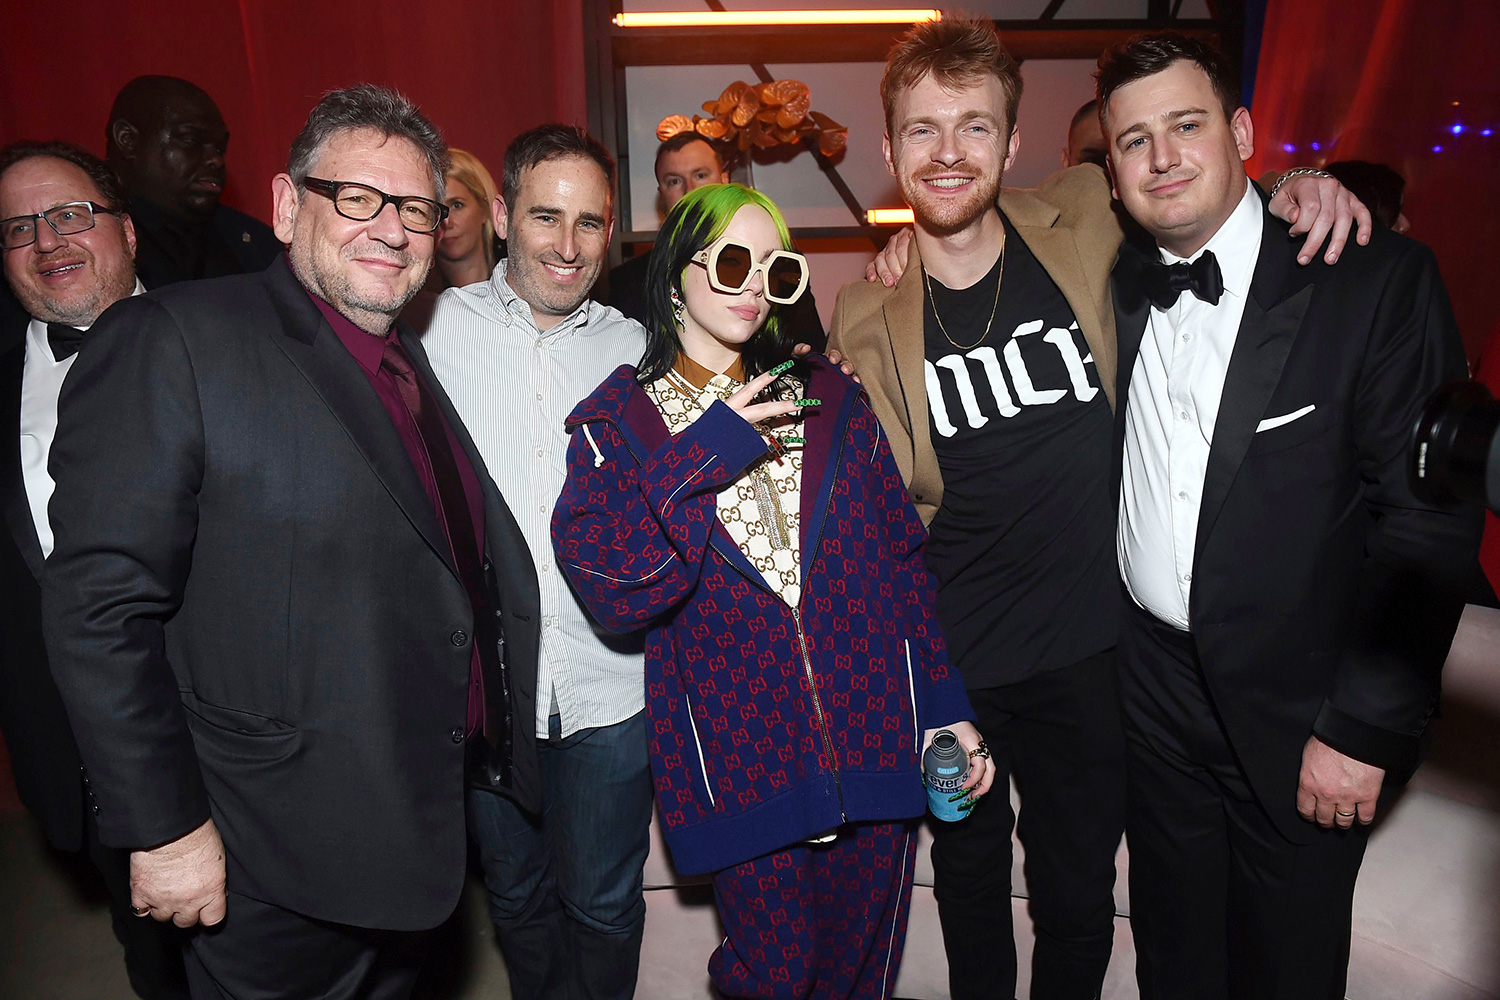 Sir Lucian Grainge, Danny Rukasin, Billie Eilish, Finneas O'Connell, Brandon Goodman. Sir Lucian Grainge